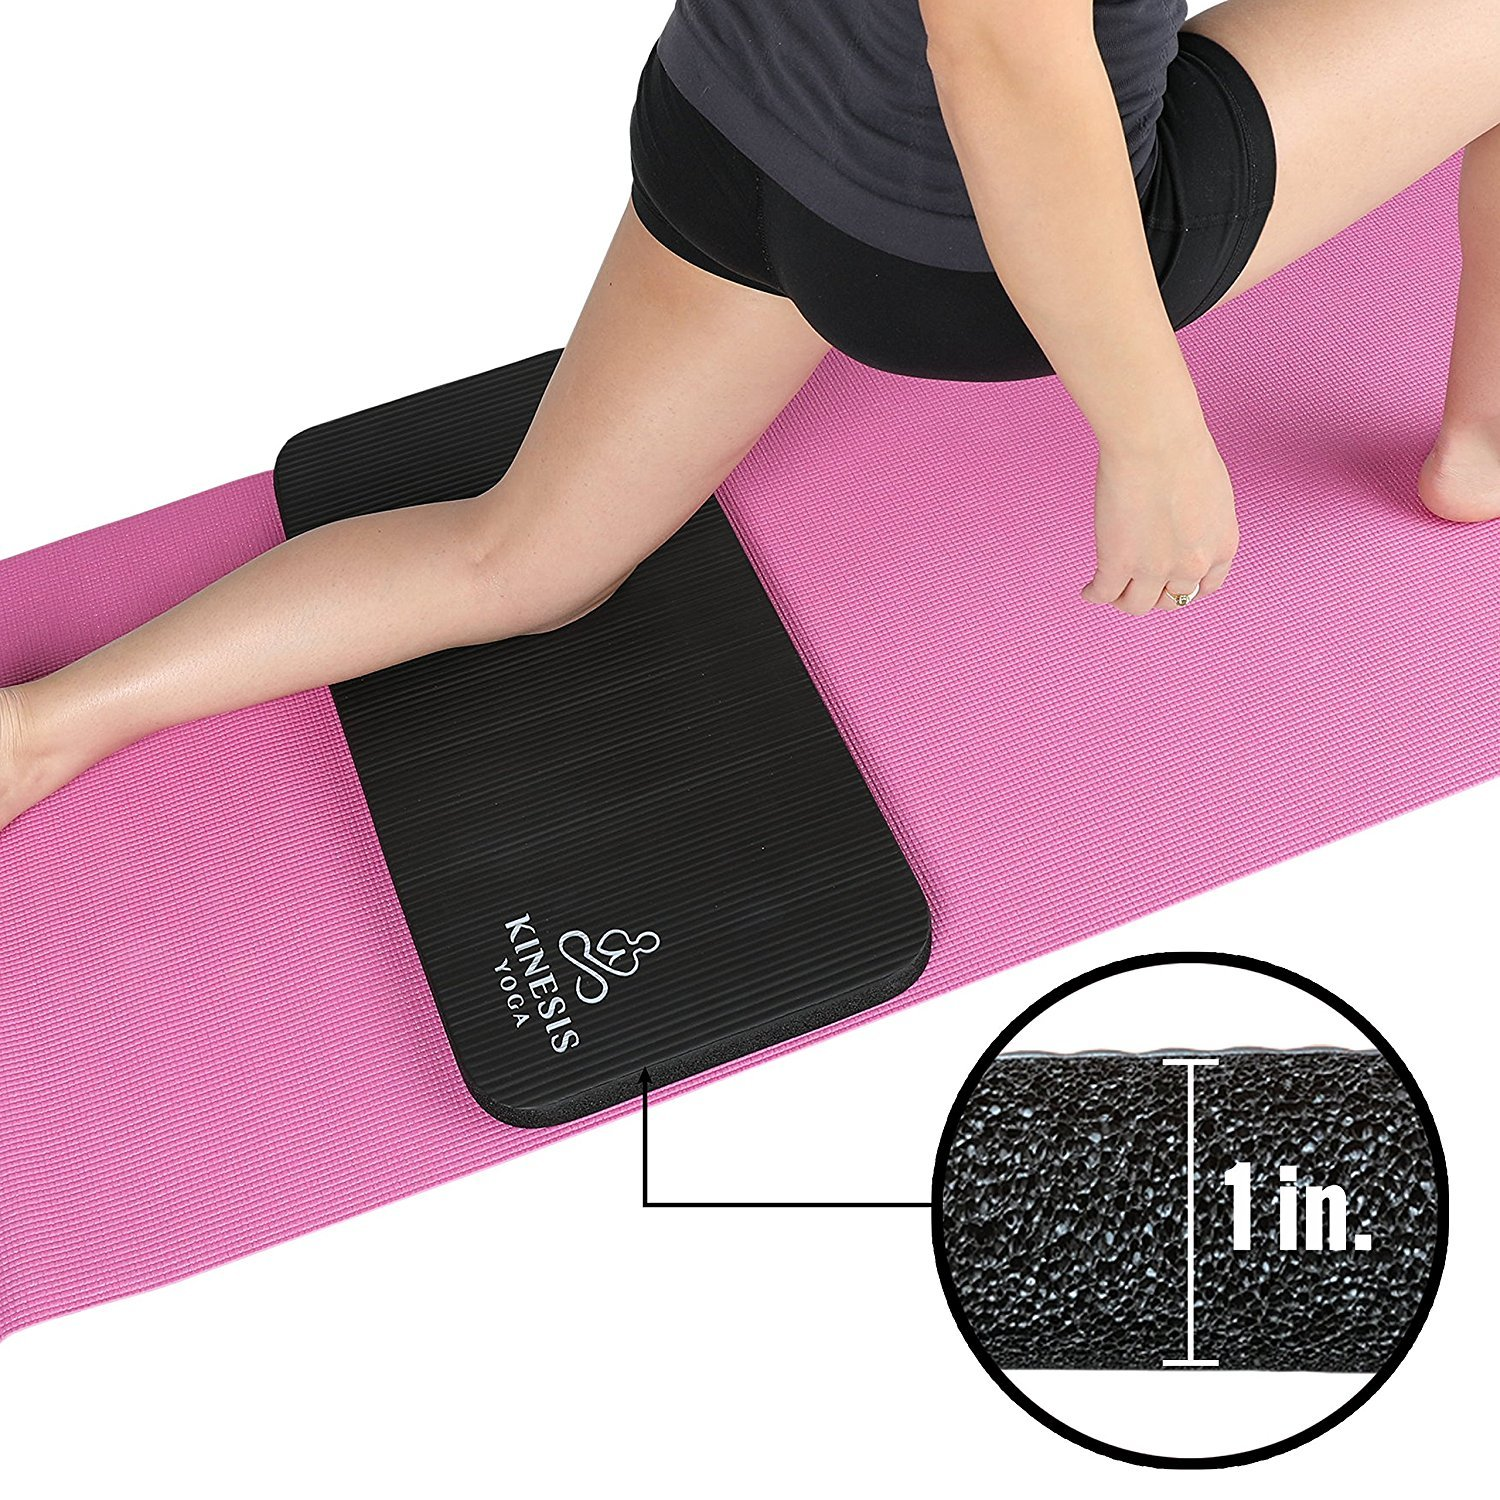 Kinesis Yoga Knee Pad Cushion - Extra Thick 1 inch (25mm) for Pain Free Yoga! Fits Standard Full Sized Yoga Mat and Comes with Velcro for Easy Travel and Storage! by Kinesis Yoga